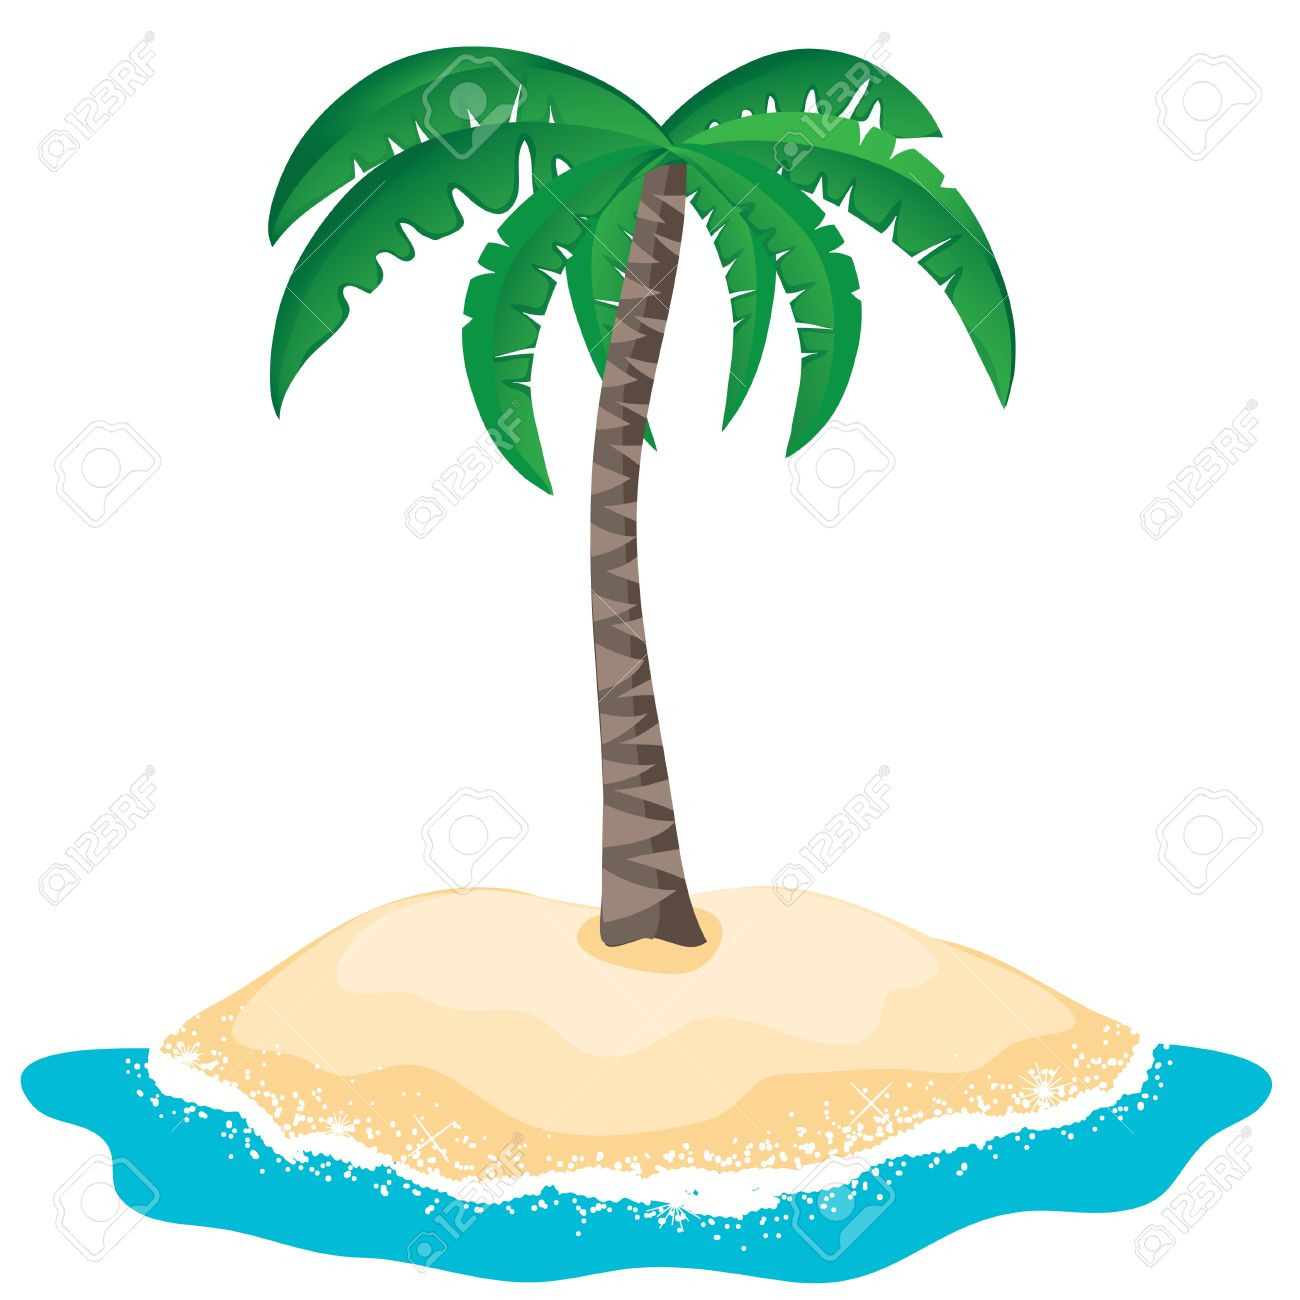 island with palm trees clipart - Clipground